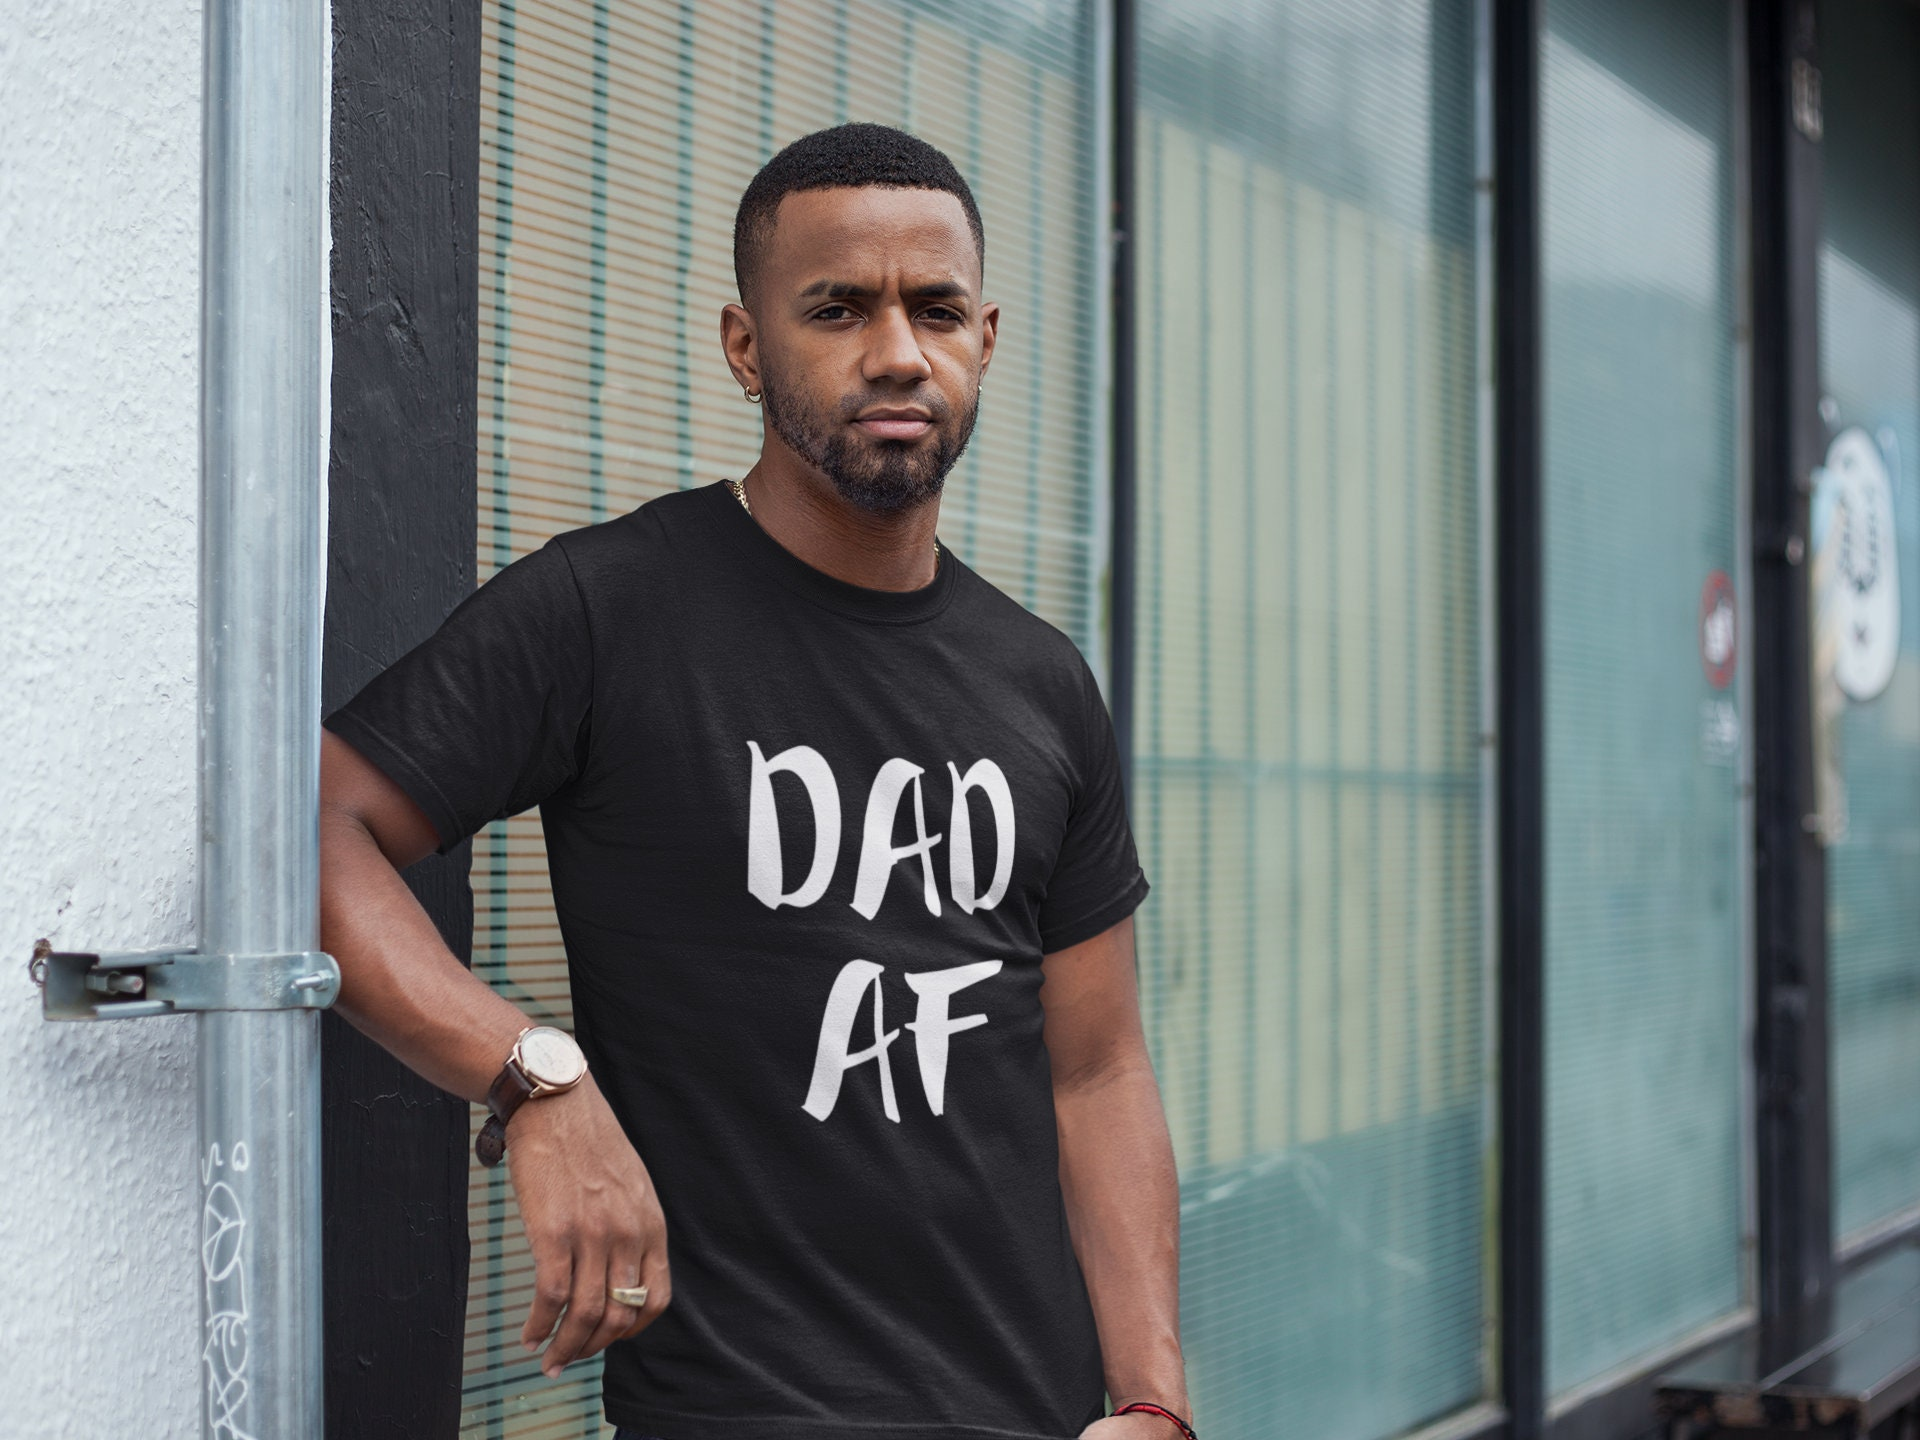 710e9512c ... Fathers Day T-Shirt, Funny Humor Tee, Cool Dad, Daddy. gallery photo ...